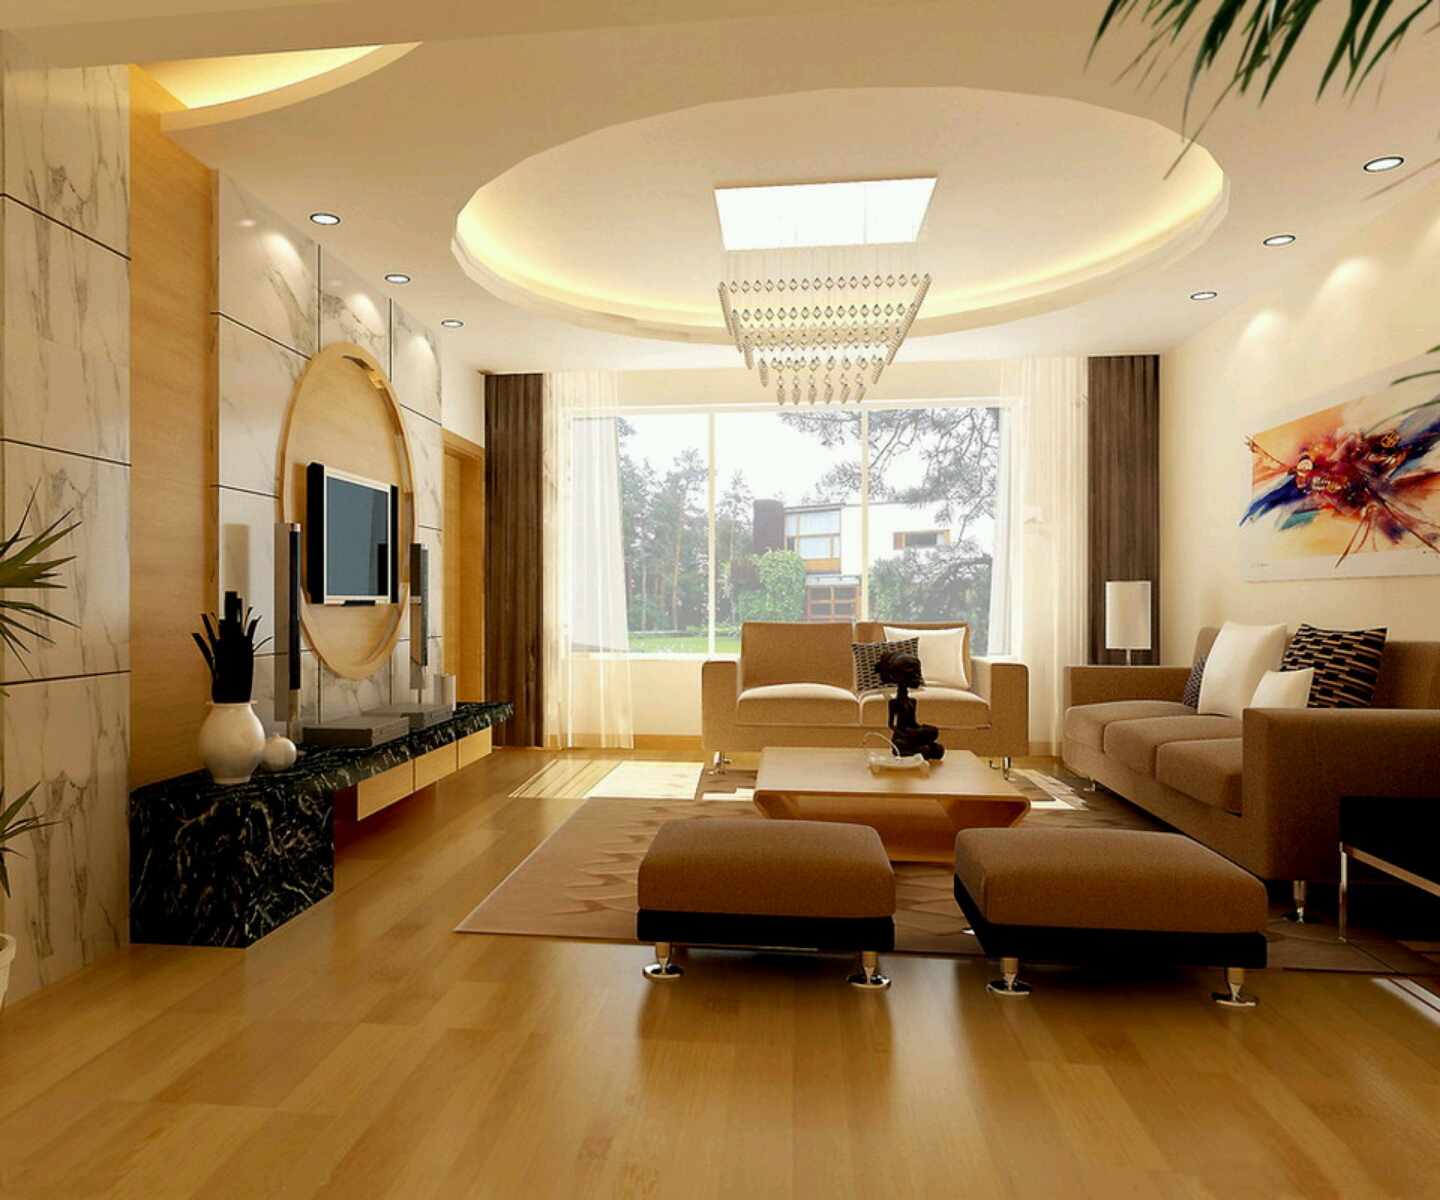 New home designs latest modern interior decoration for New design sitting room